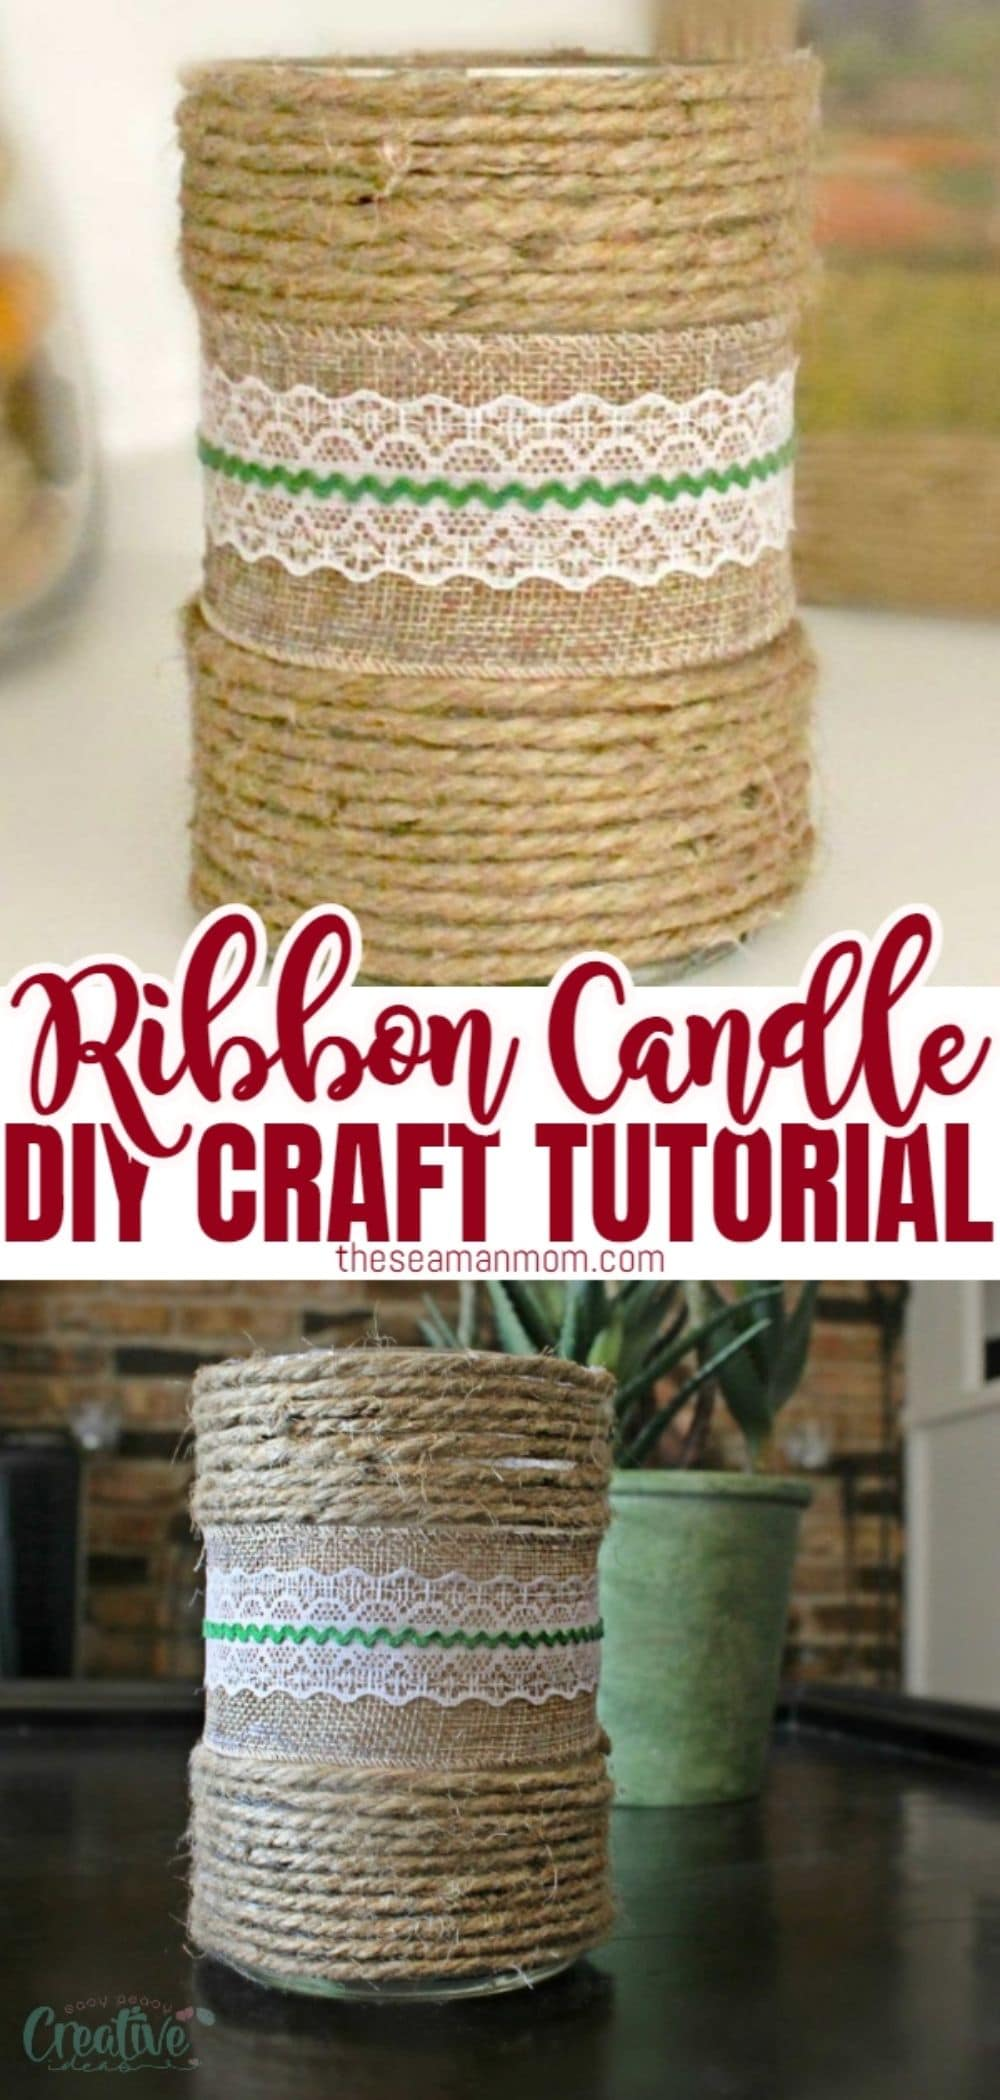 Decorating candles with ribbon is probably the easiest way to make pretty decorated candles for your home decor! Theseribbon candles are good for more than just light and scent, super adorable and a great way to express your creativity, on the budget! via @petroneagu